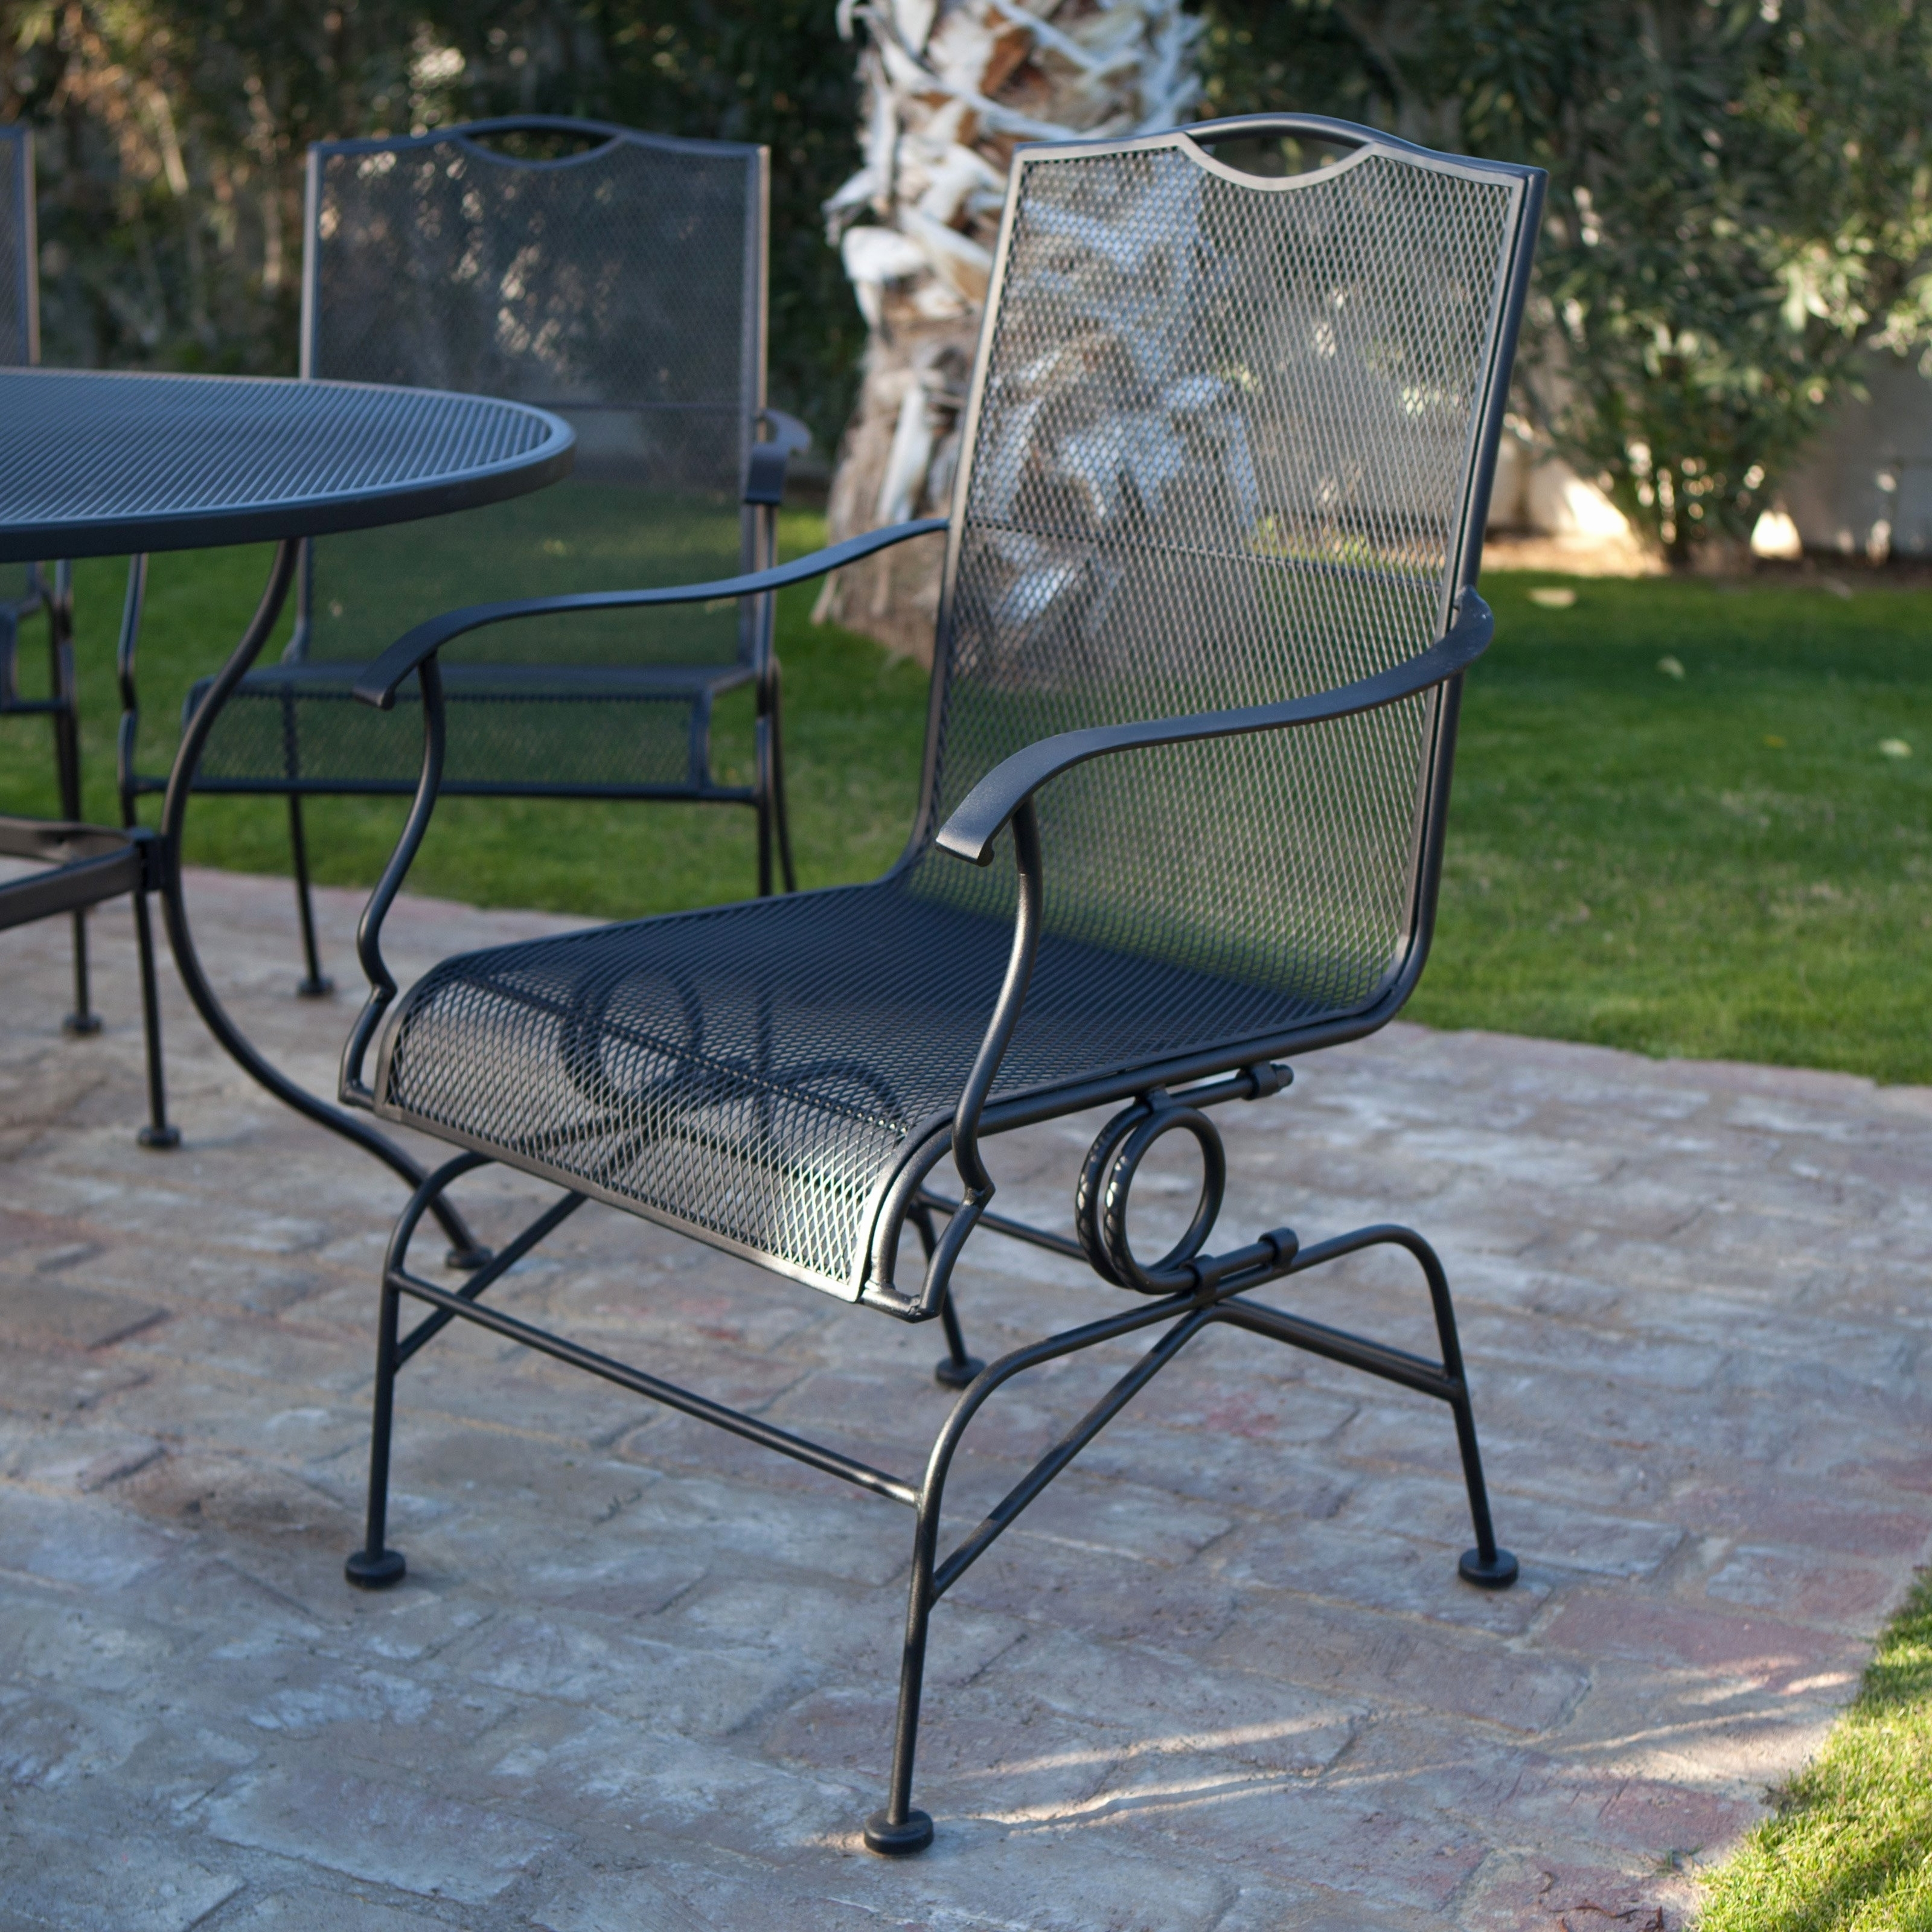 Widely Used Wrought Iron Patio Conversation Sets With Regard To 30 Amazing Wrought Iron Garden Furniture Ireland Scheme – Bakken (View 17 of 20)